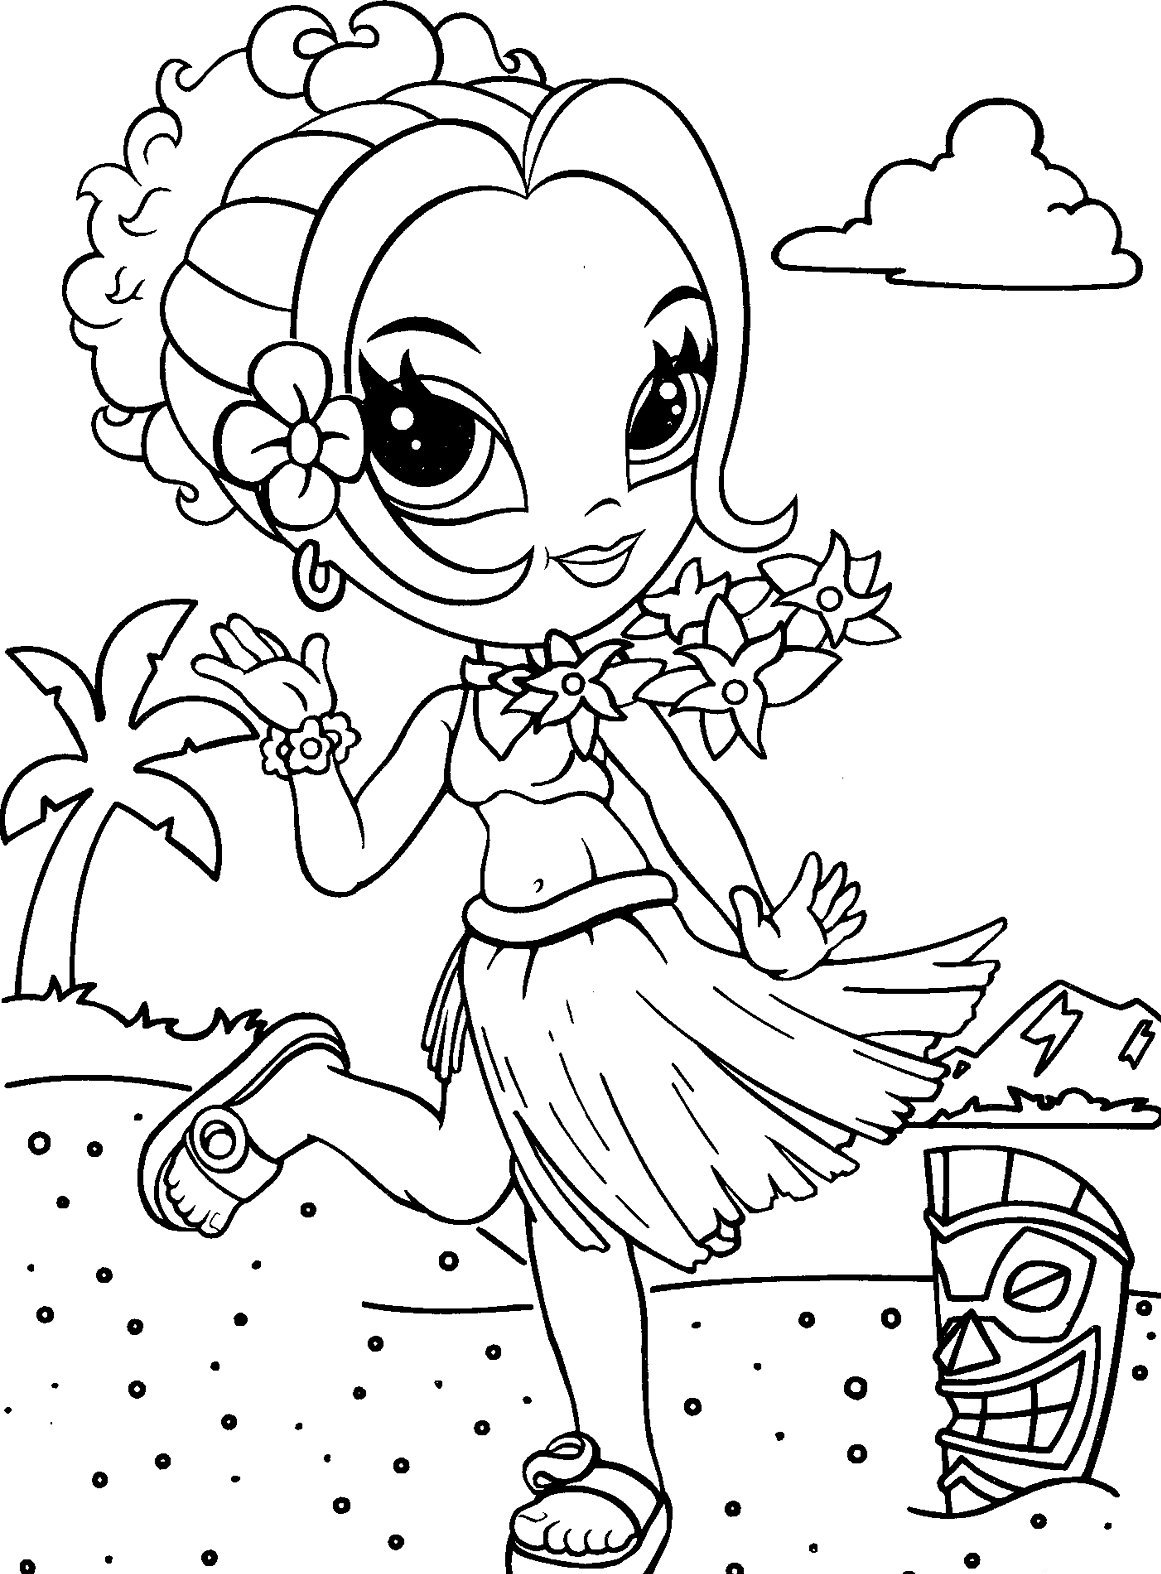 lisa frank free coloring pages - photo#2